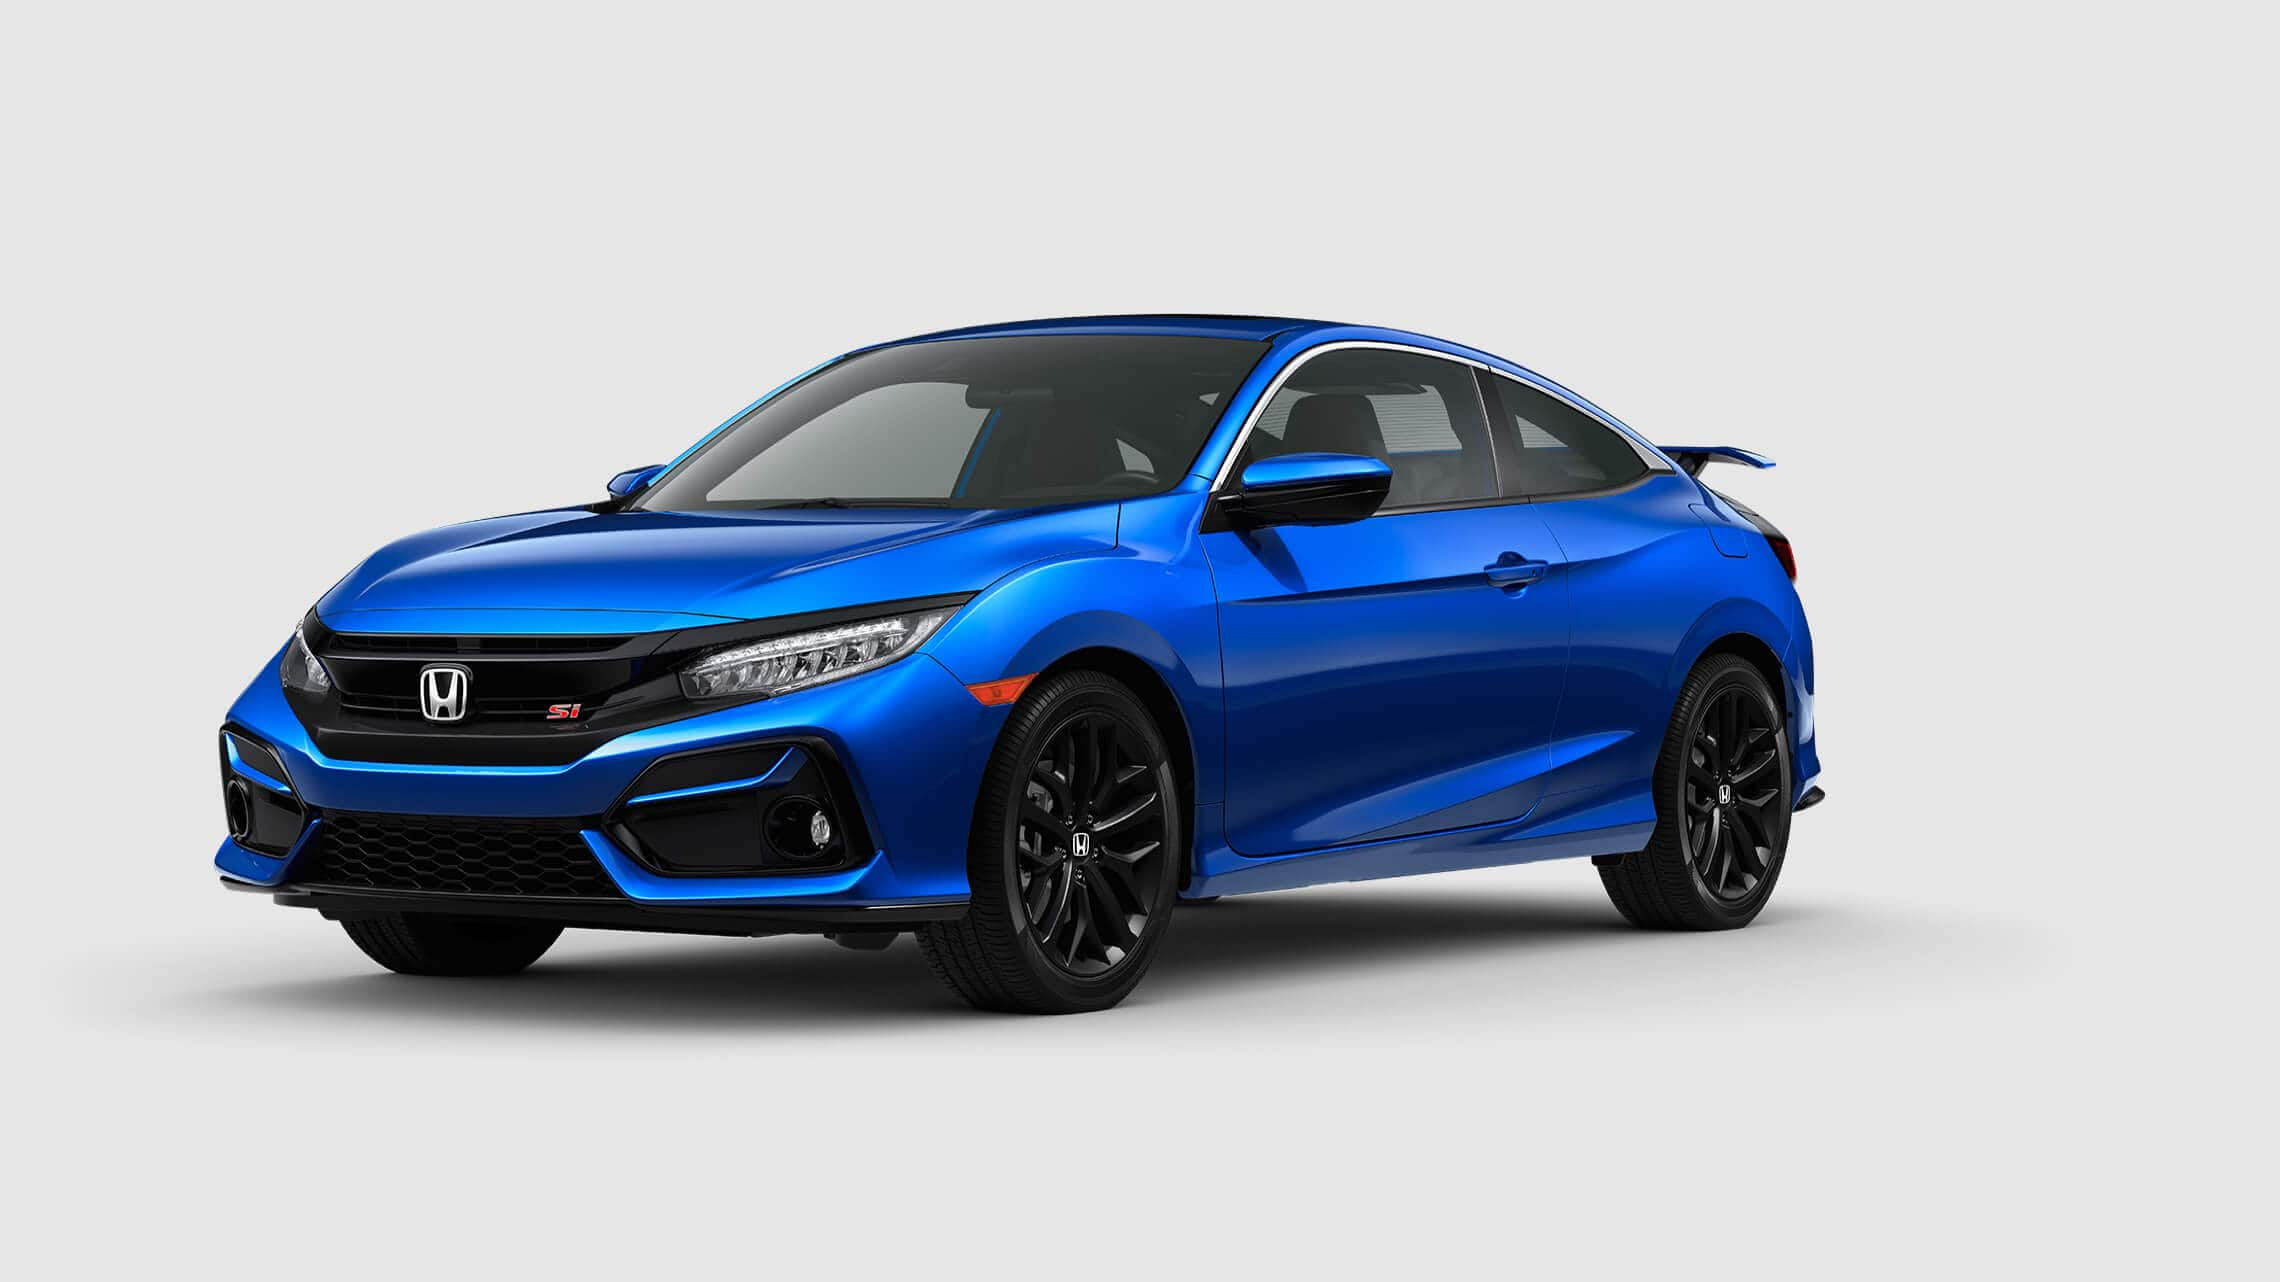 Front 3/4 driver's side view of 2020 Honda Civic Si Sedan in Aegean Blue Metallic.